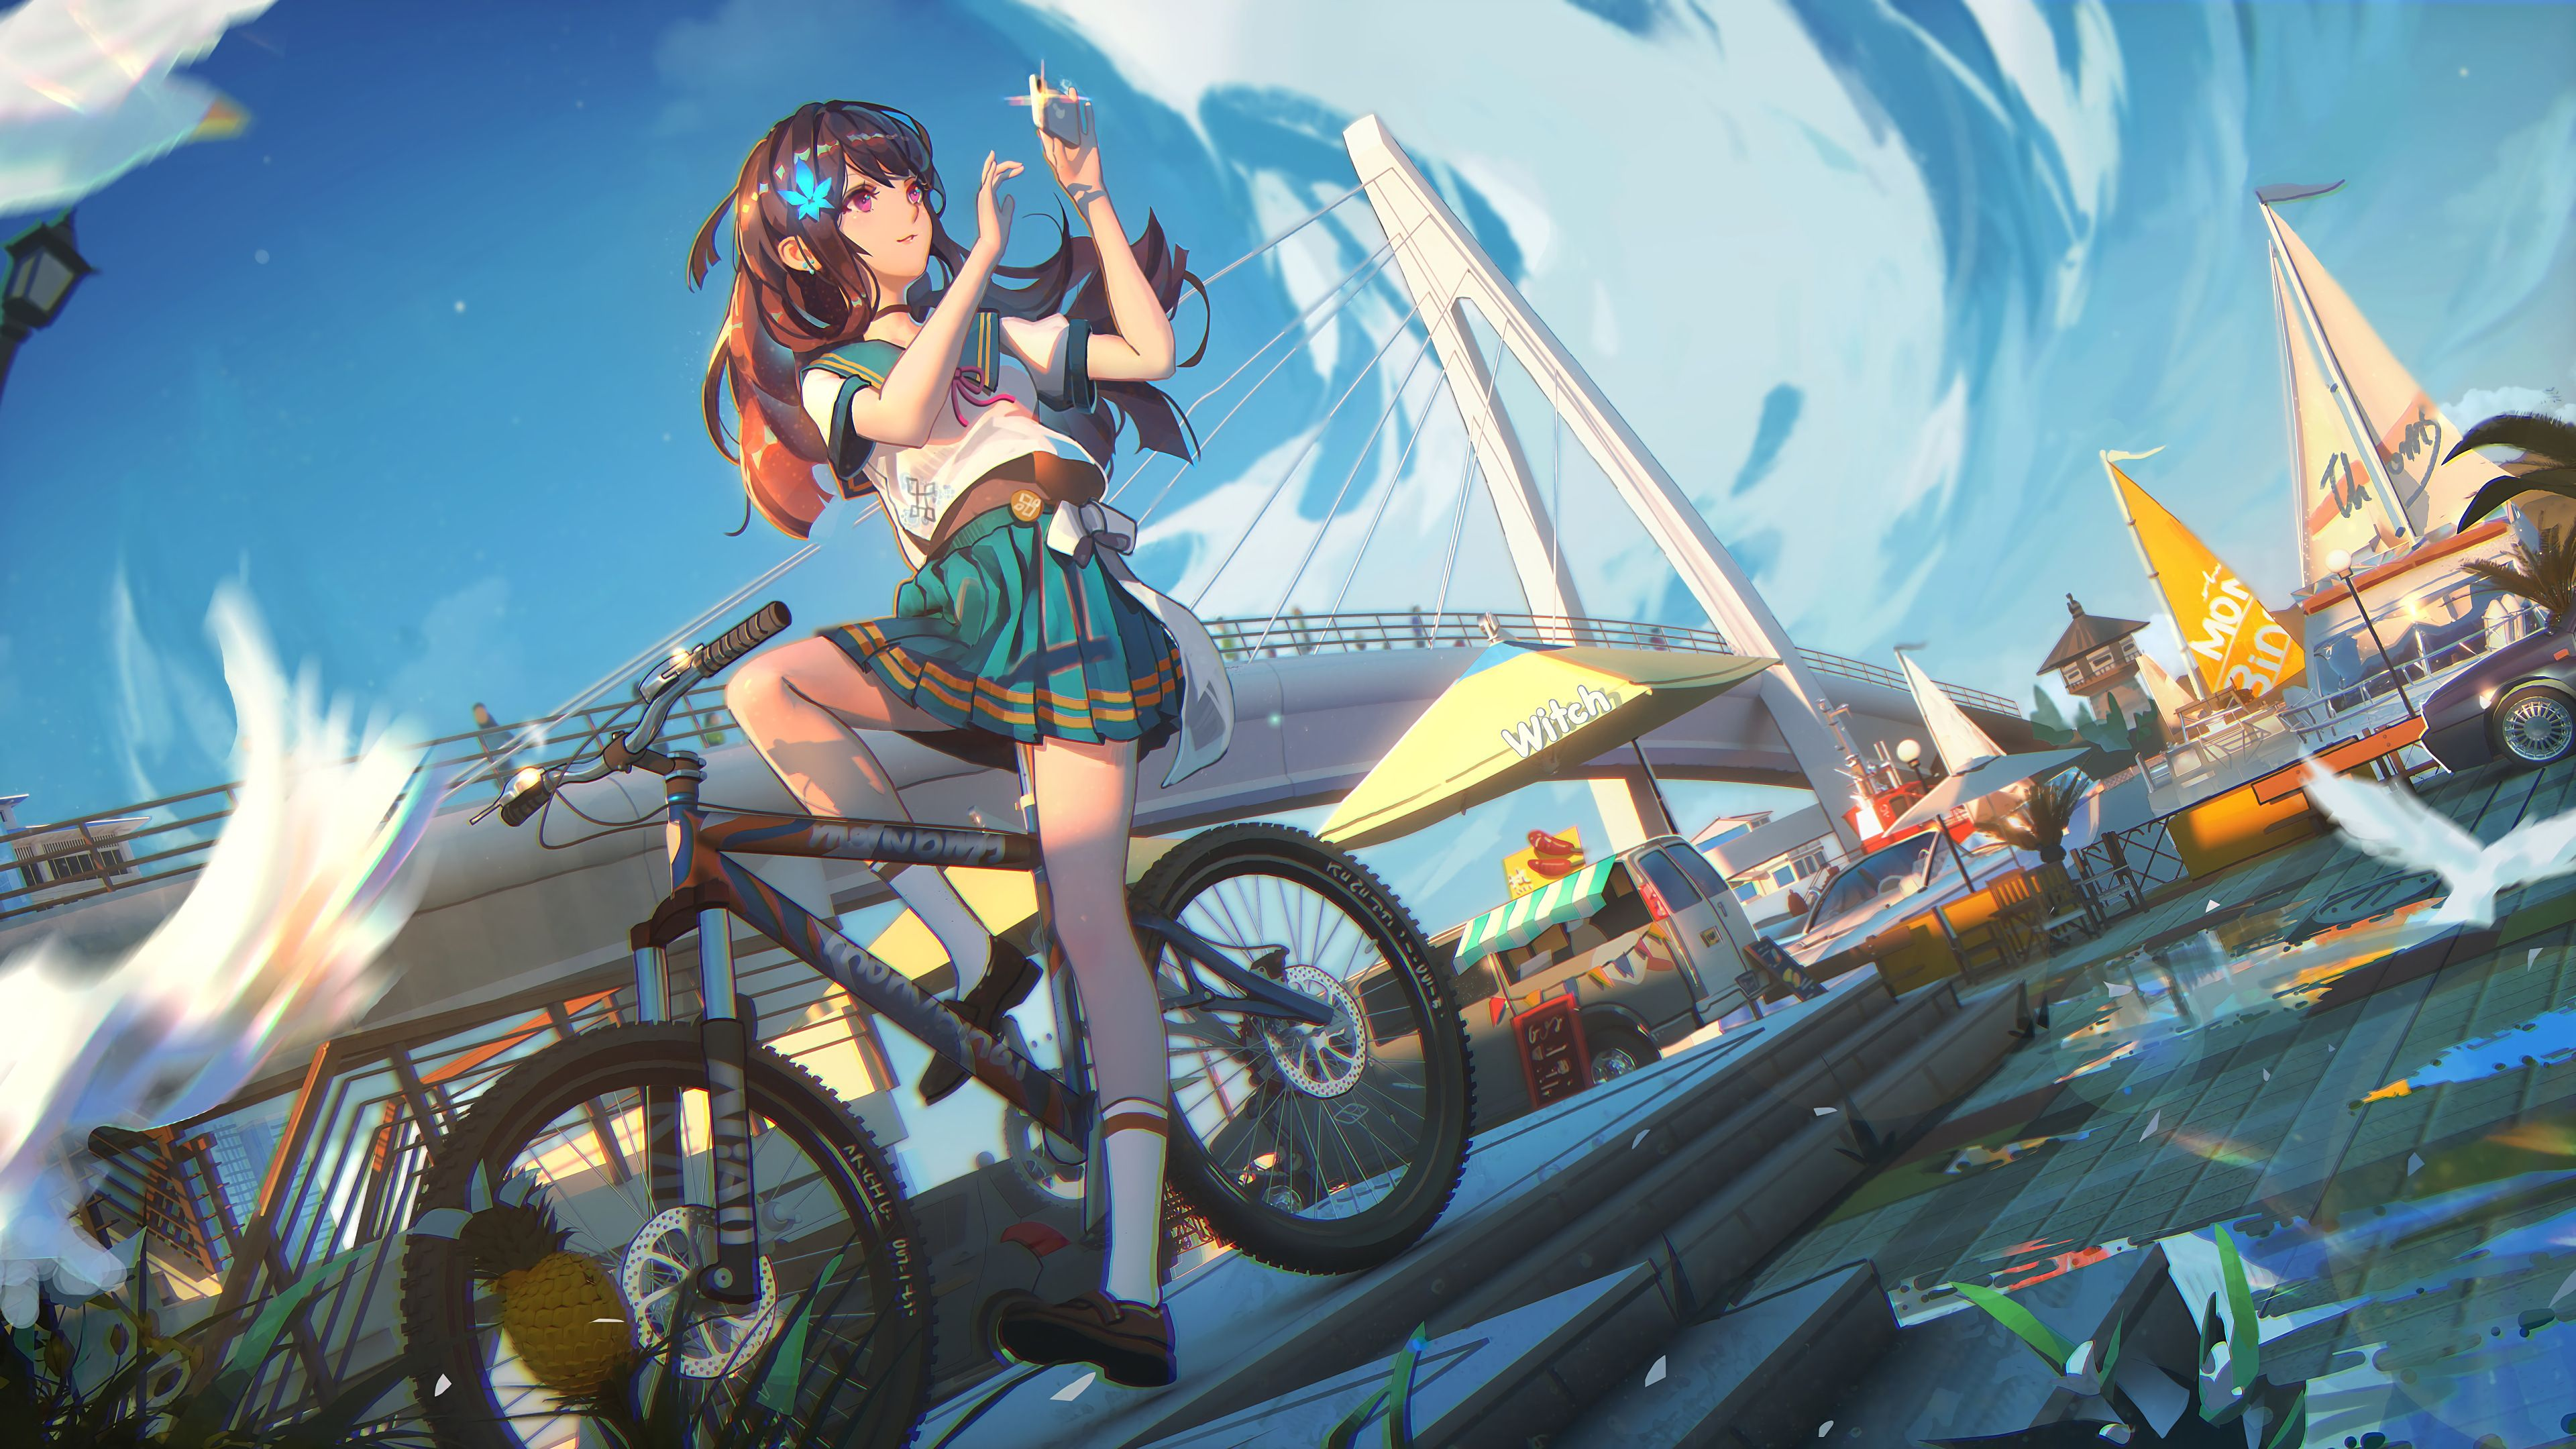 Wallpaper 4k Para Pc Anime Anime Student Girl On A Bicycle Wallpaper 4k Ultra Hd Id 3722 Wallpapers In 2020 Cool Anime Wallpapers Hd Anime Wallpapers Anime Wallpaper